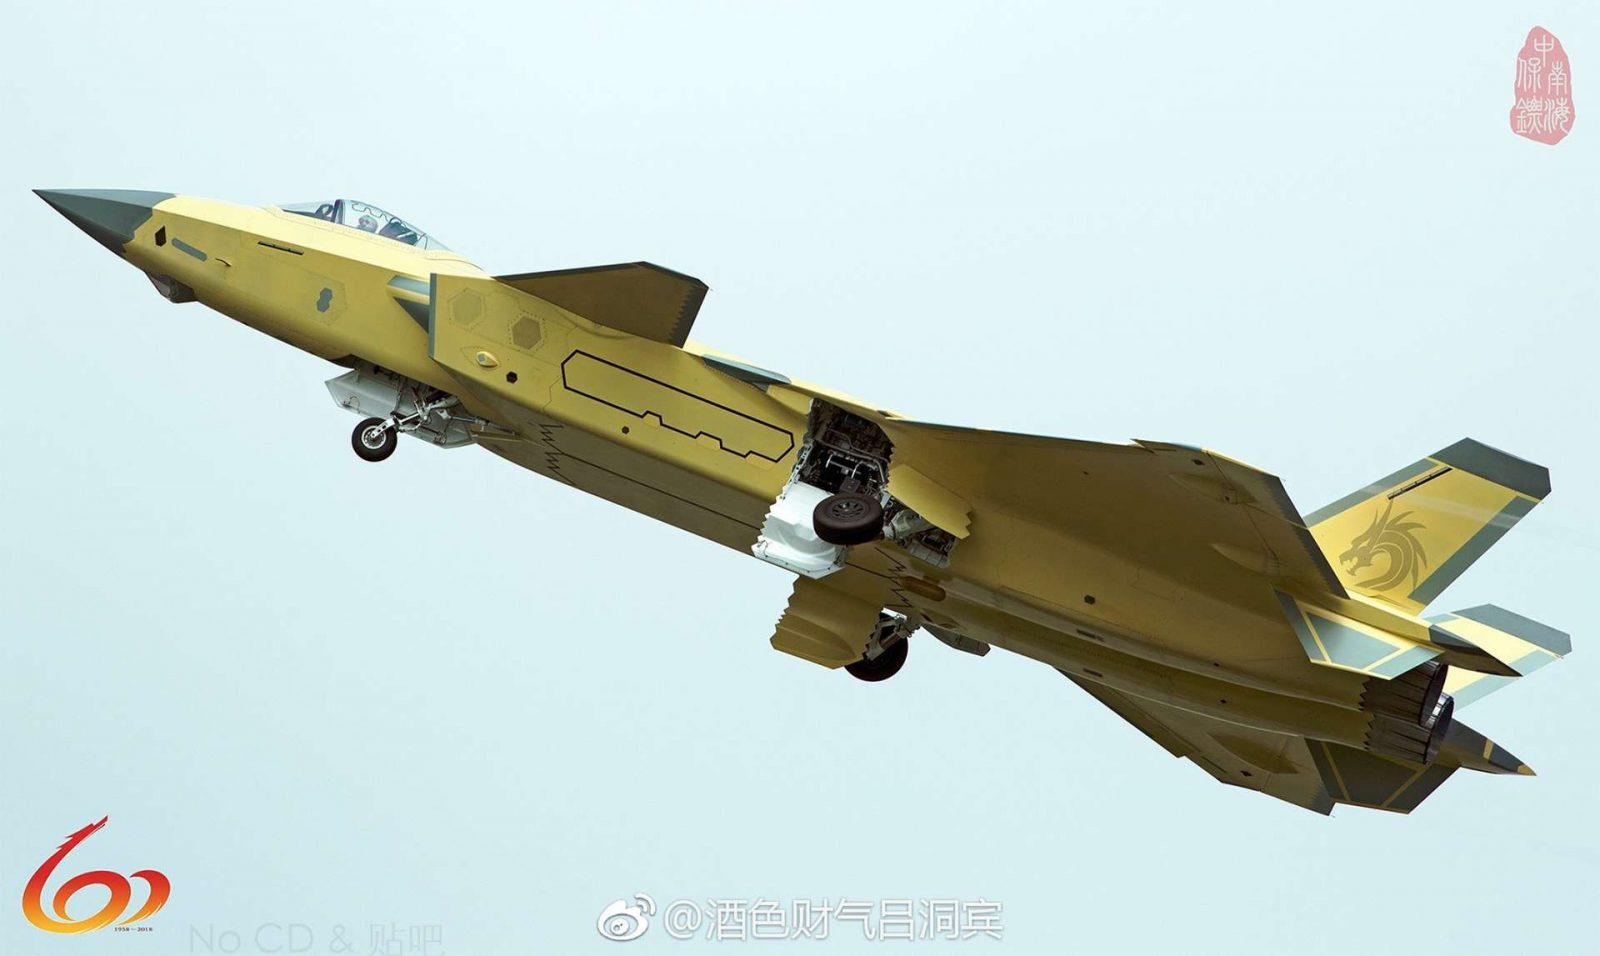 Latest Shots of Unpainted J-20 Stealth Fighter provide Insights about New Capability 2